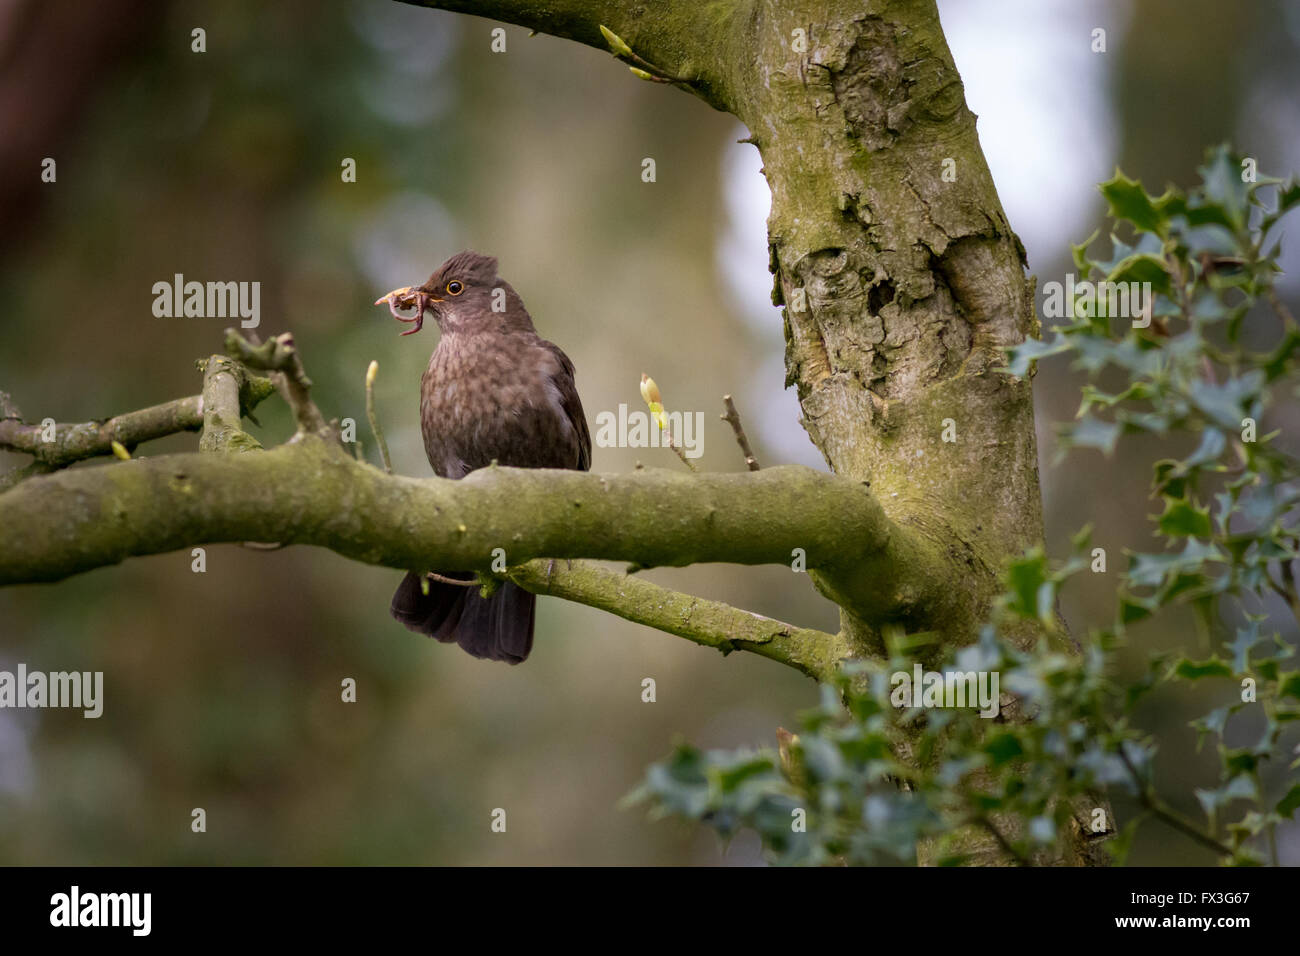 Female blackbird with a mouthful of worm for its young, UK - Stock Image